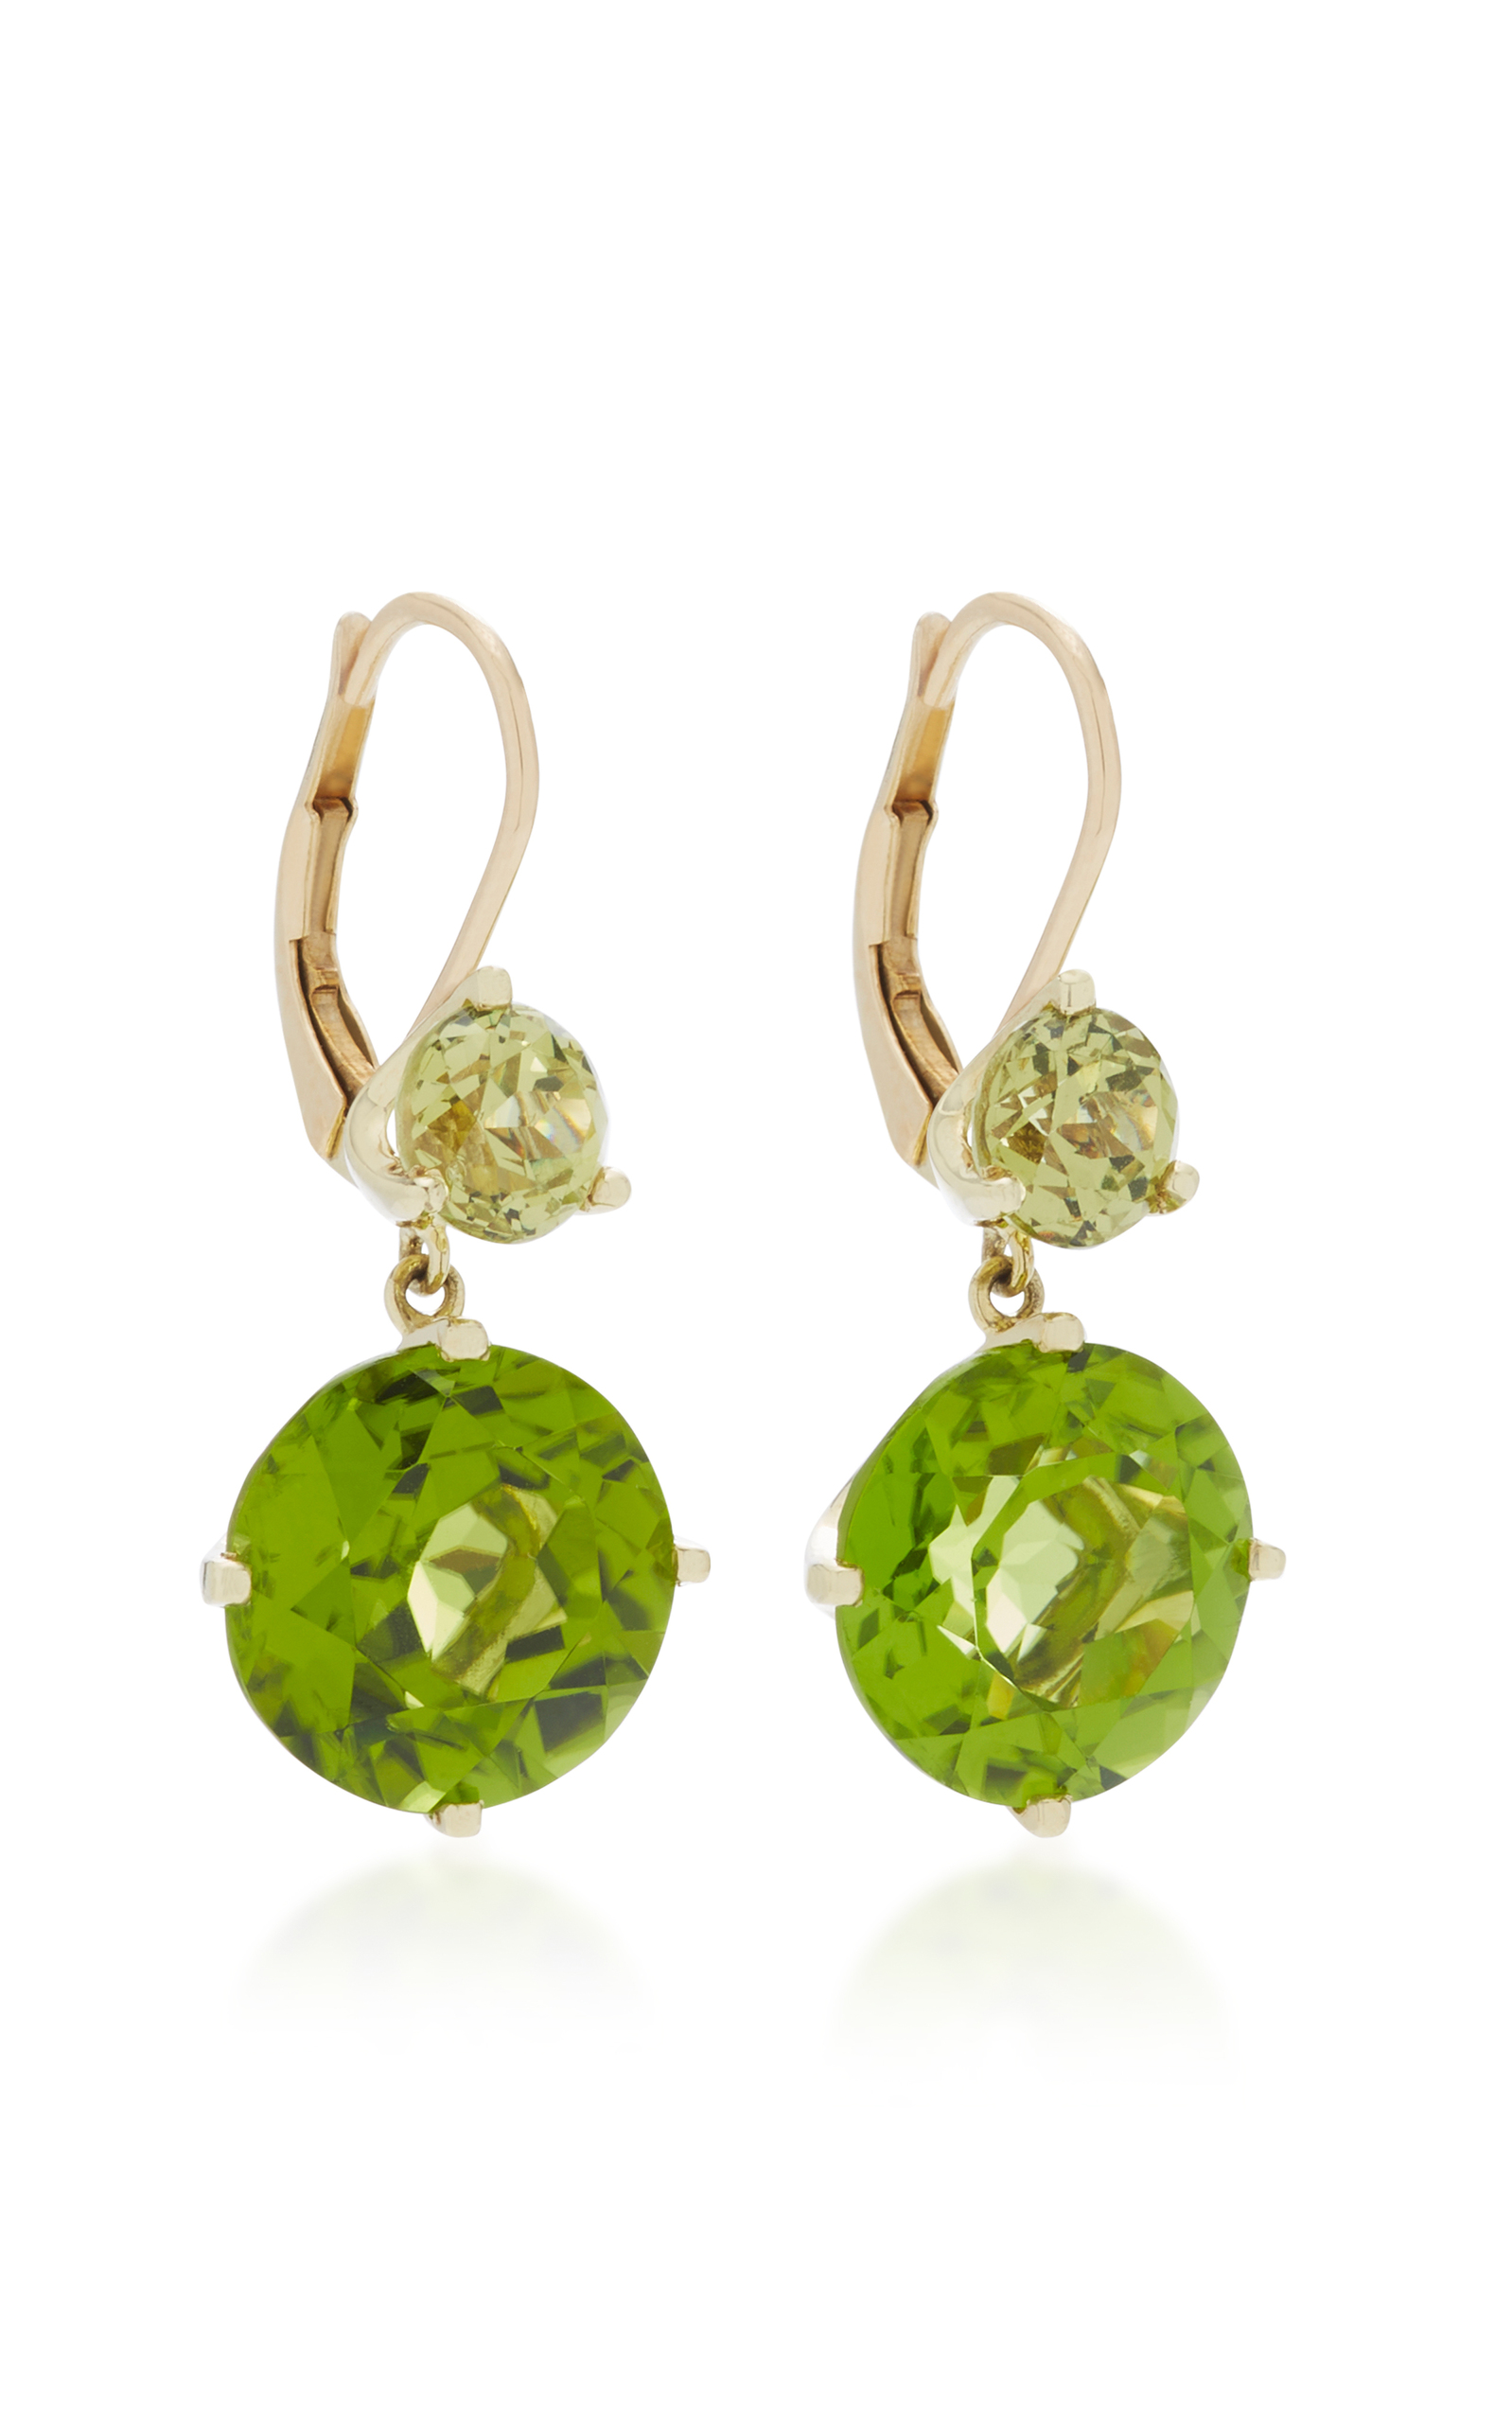 14K Gold Garnet and Peridot Drop Earrings by Jane